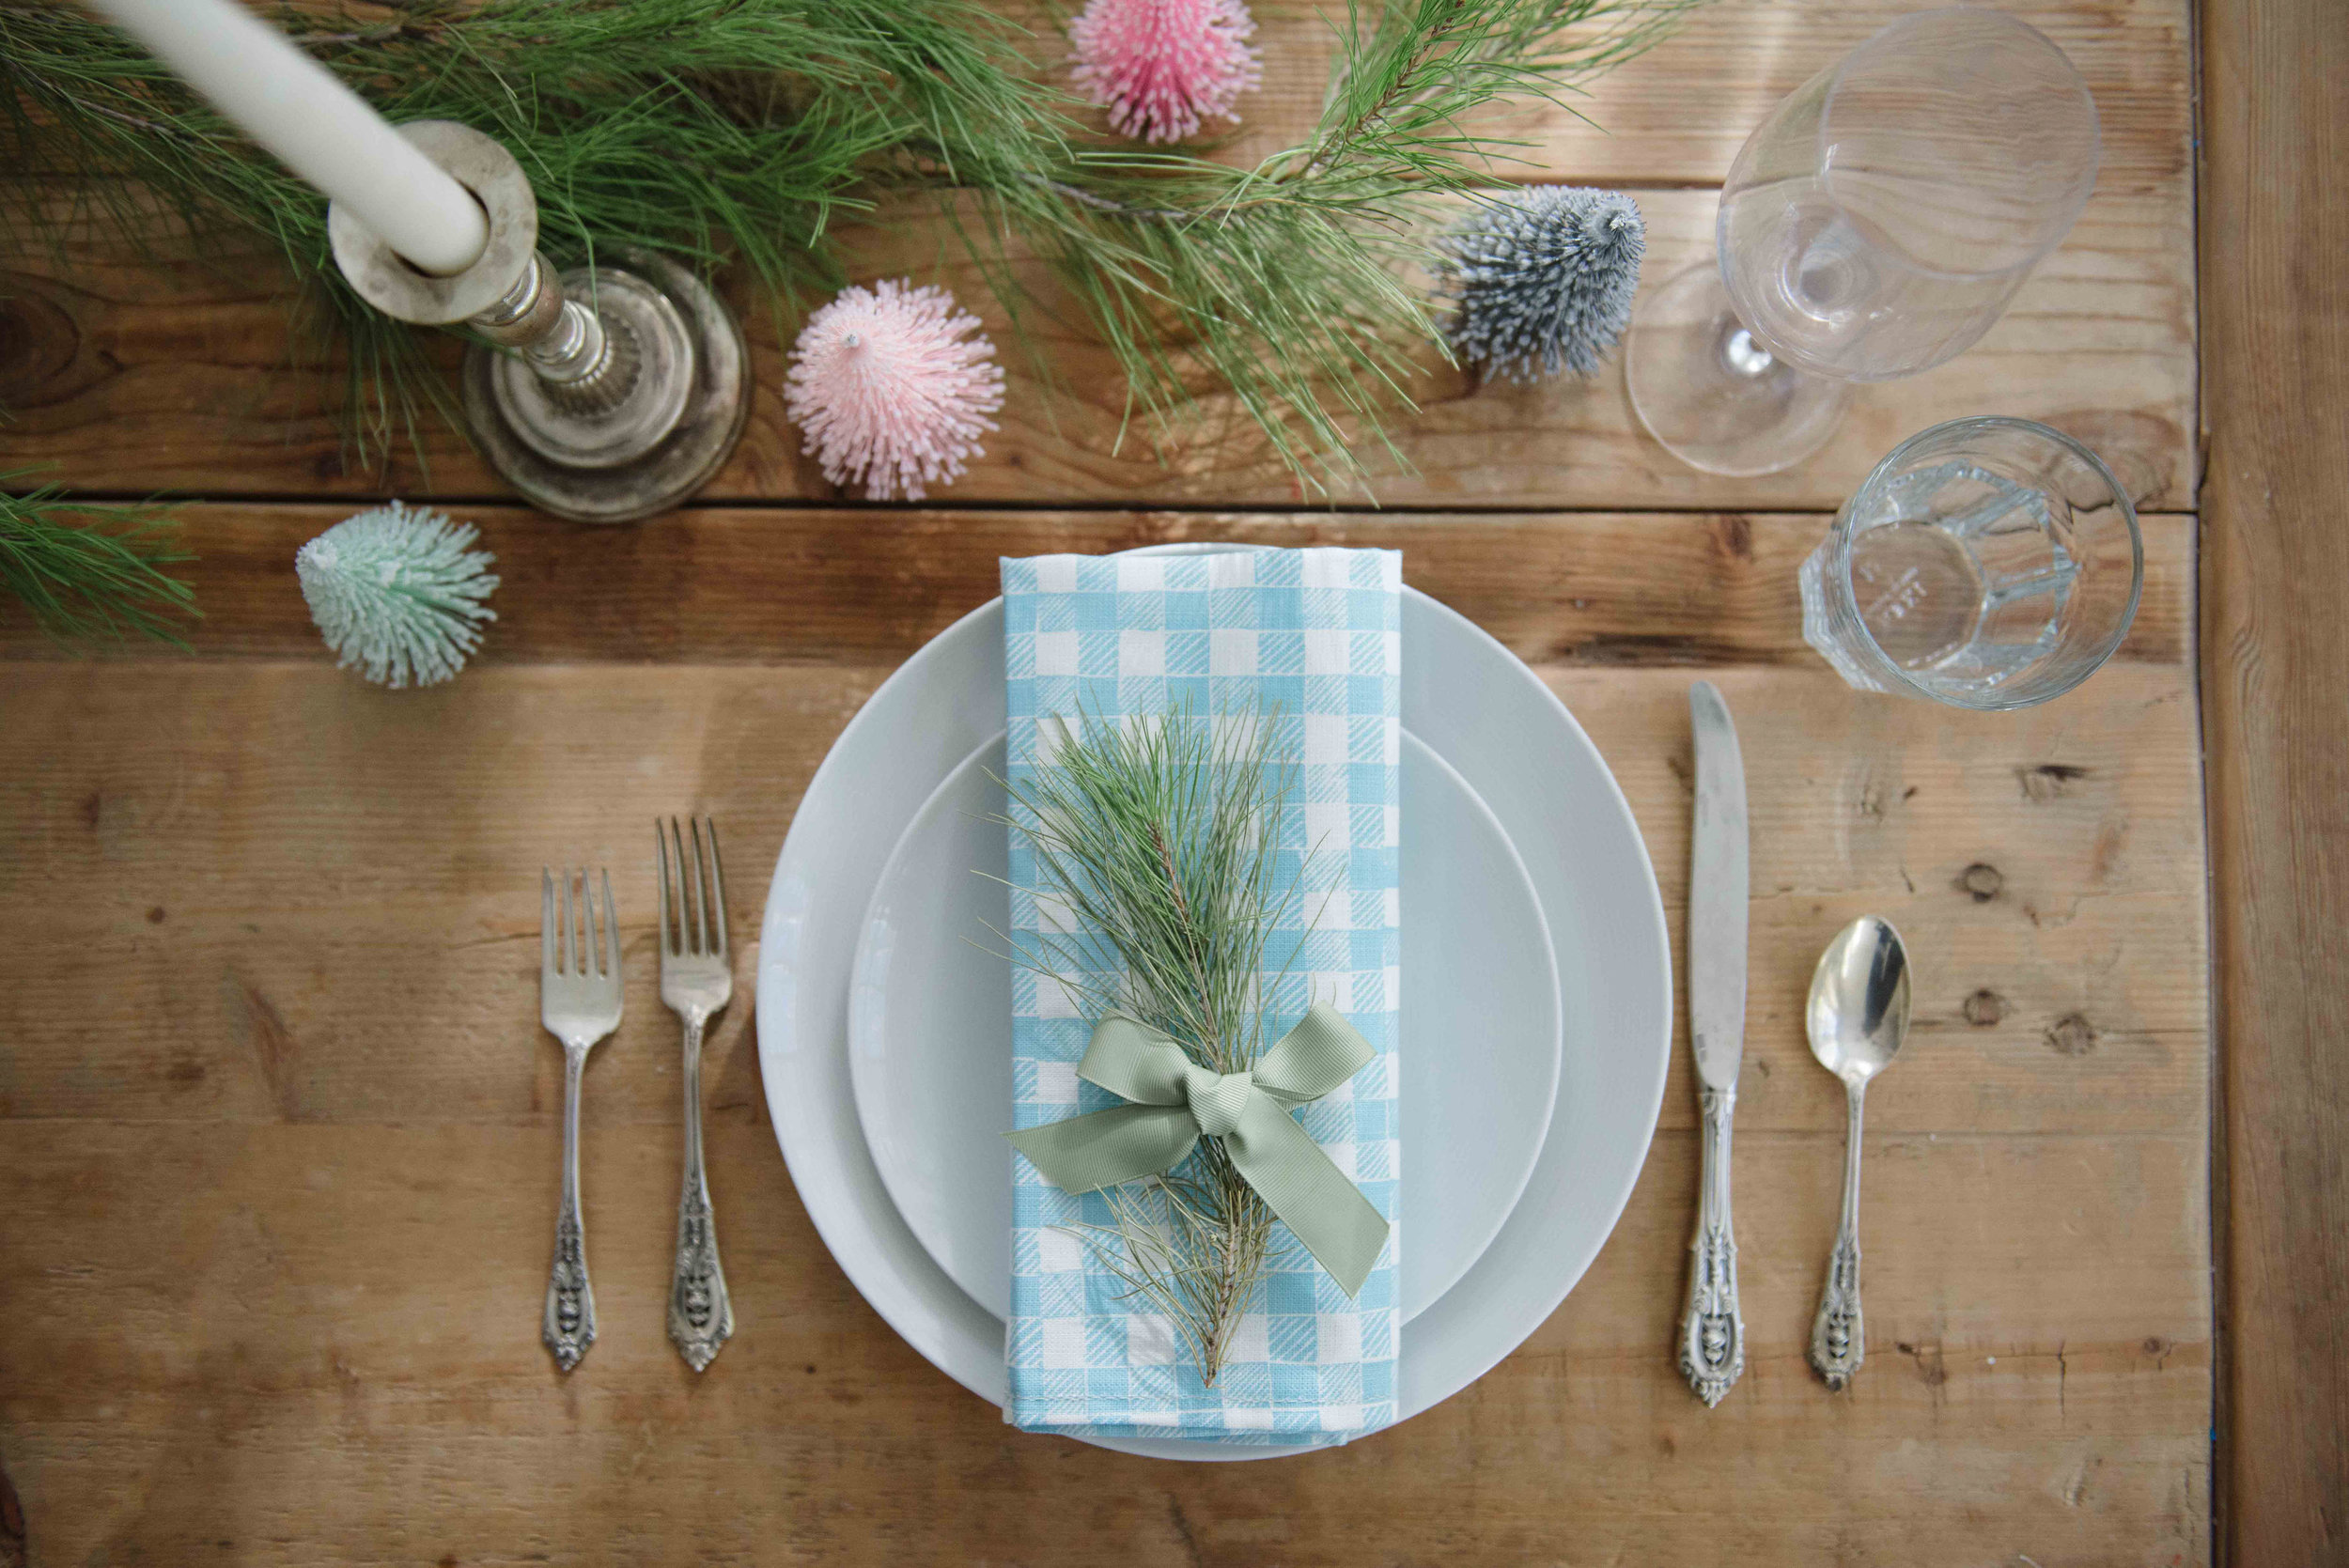 Block Print Gingham Napkin in Light Blue, Photo by Emily Young